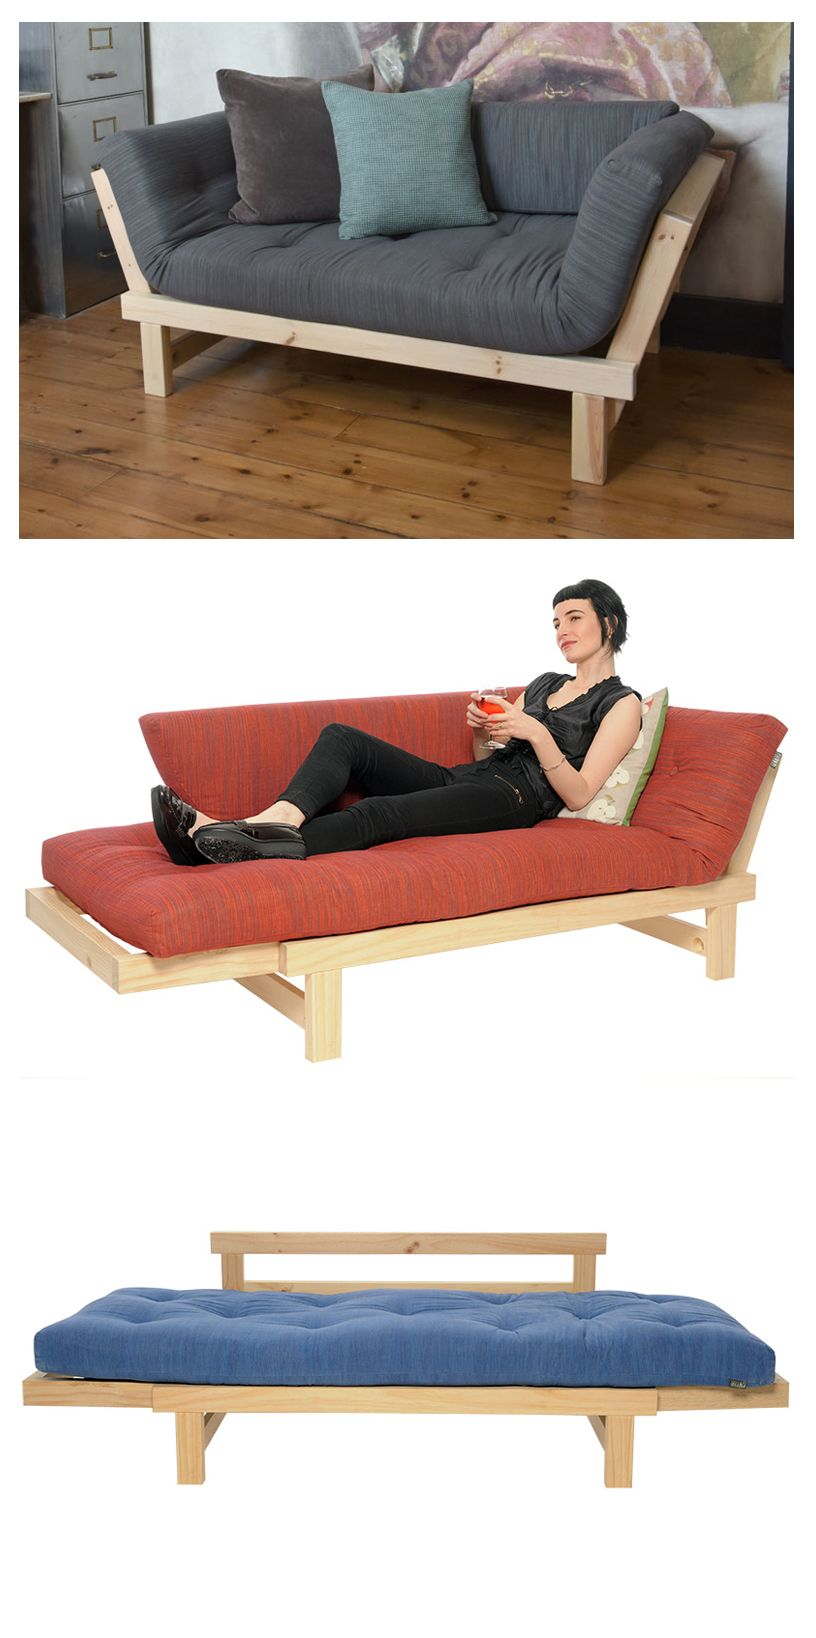 Gewaltig Switch Sofa Das Beste Von Day Bed - Move Into Fort Zone